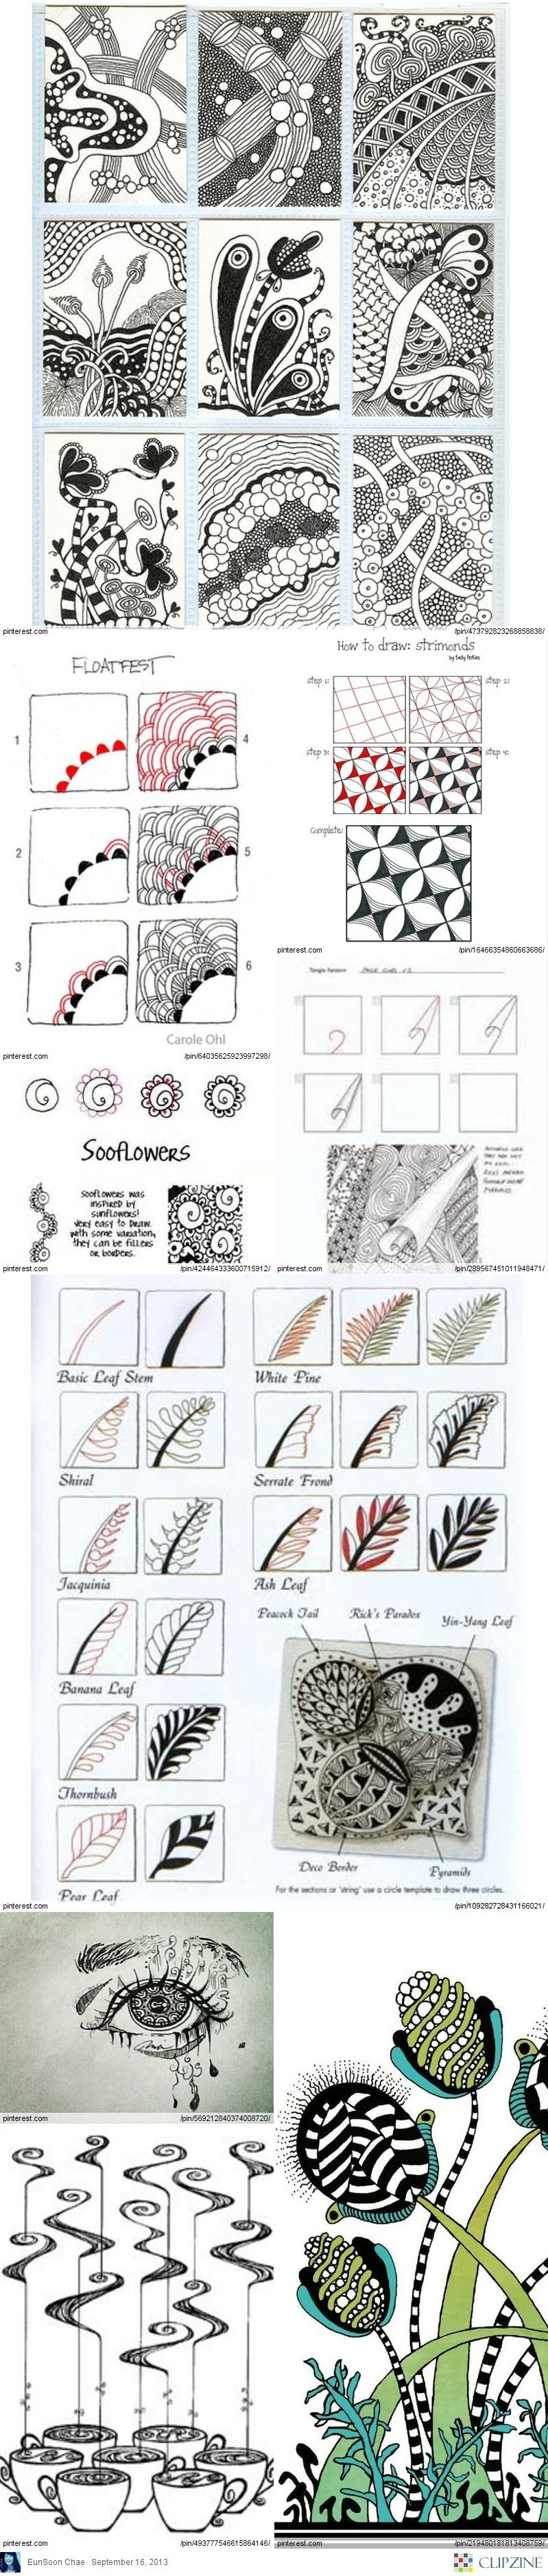 Color zentangles online - Zentangle Patterns And Ideas Zentangle Zentangle Hand Drawn Art Zentangle Patterns